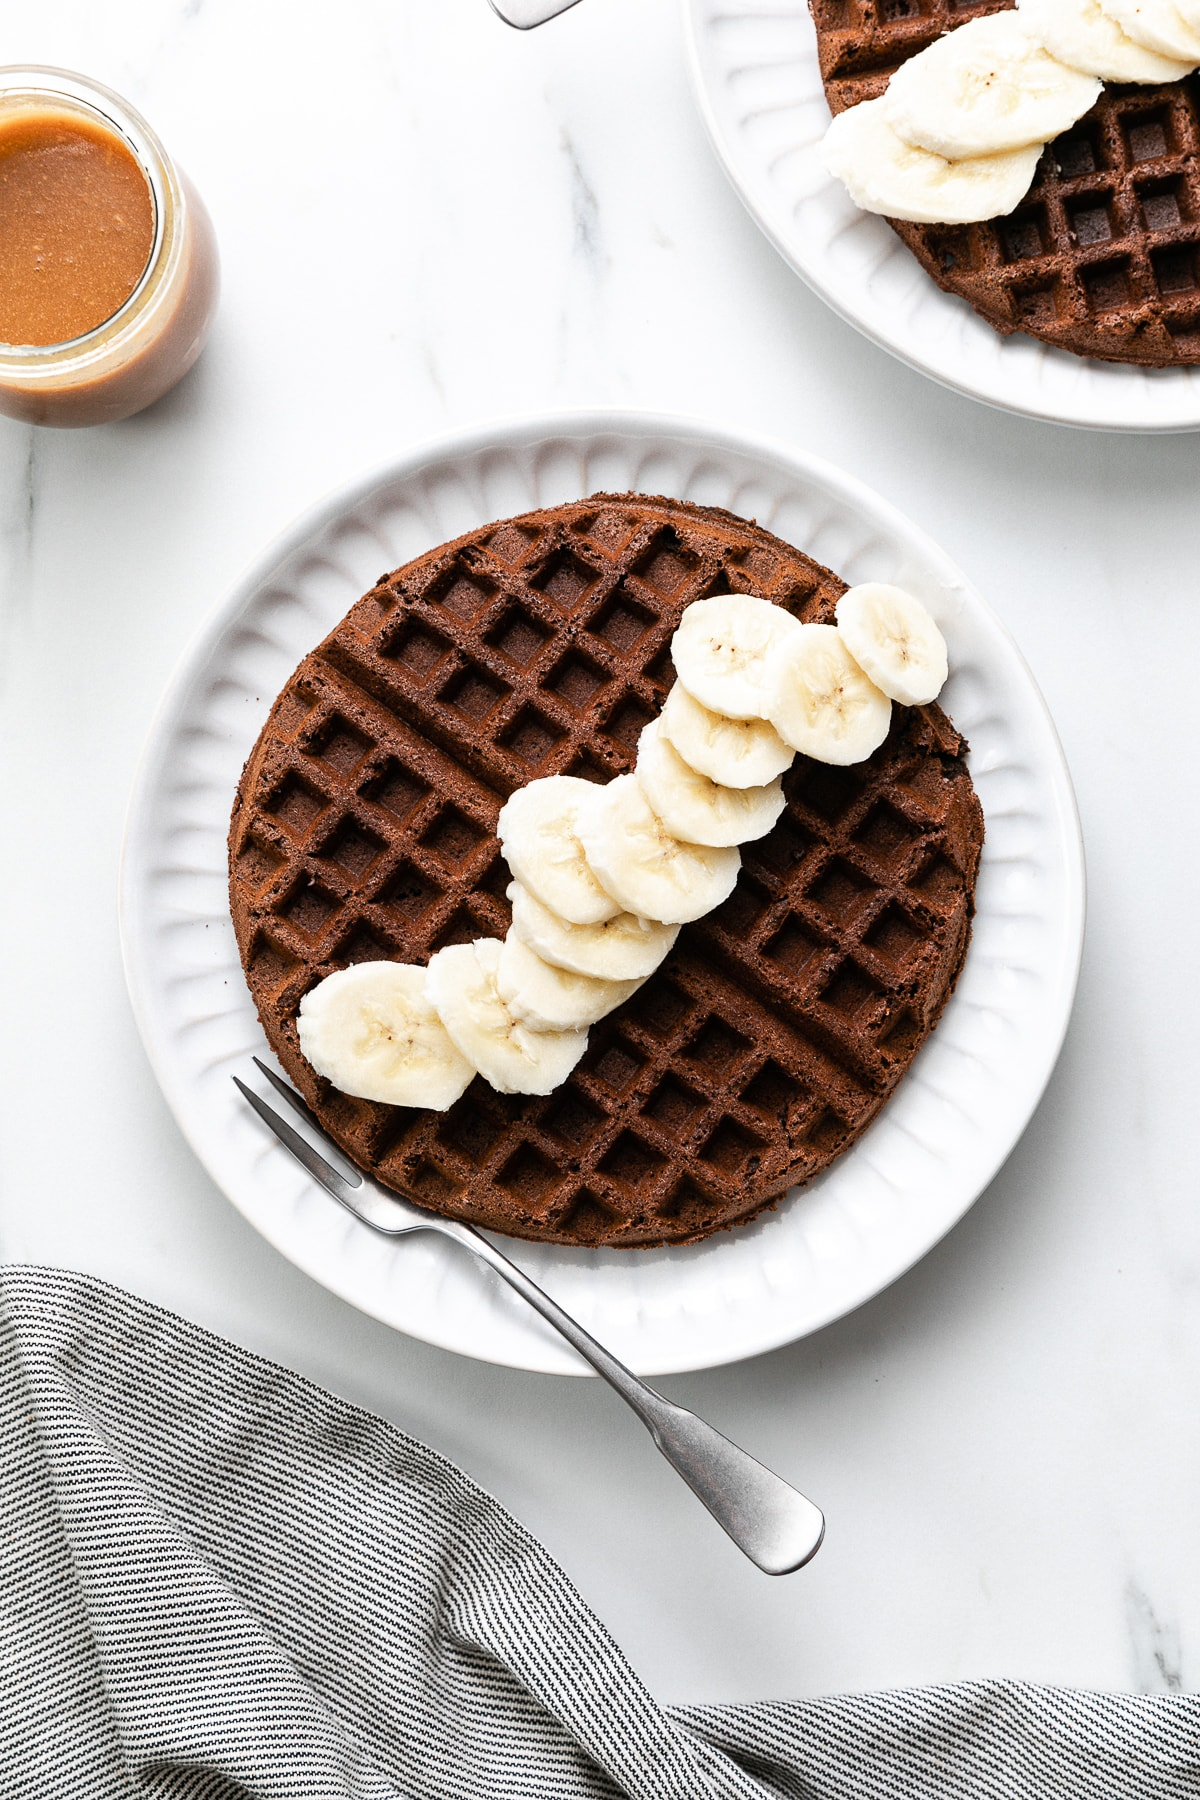 top down view of chocolate buckwheat waffle with items surrounding.